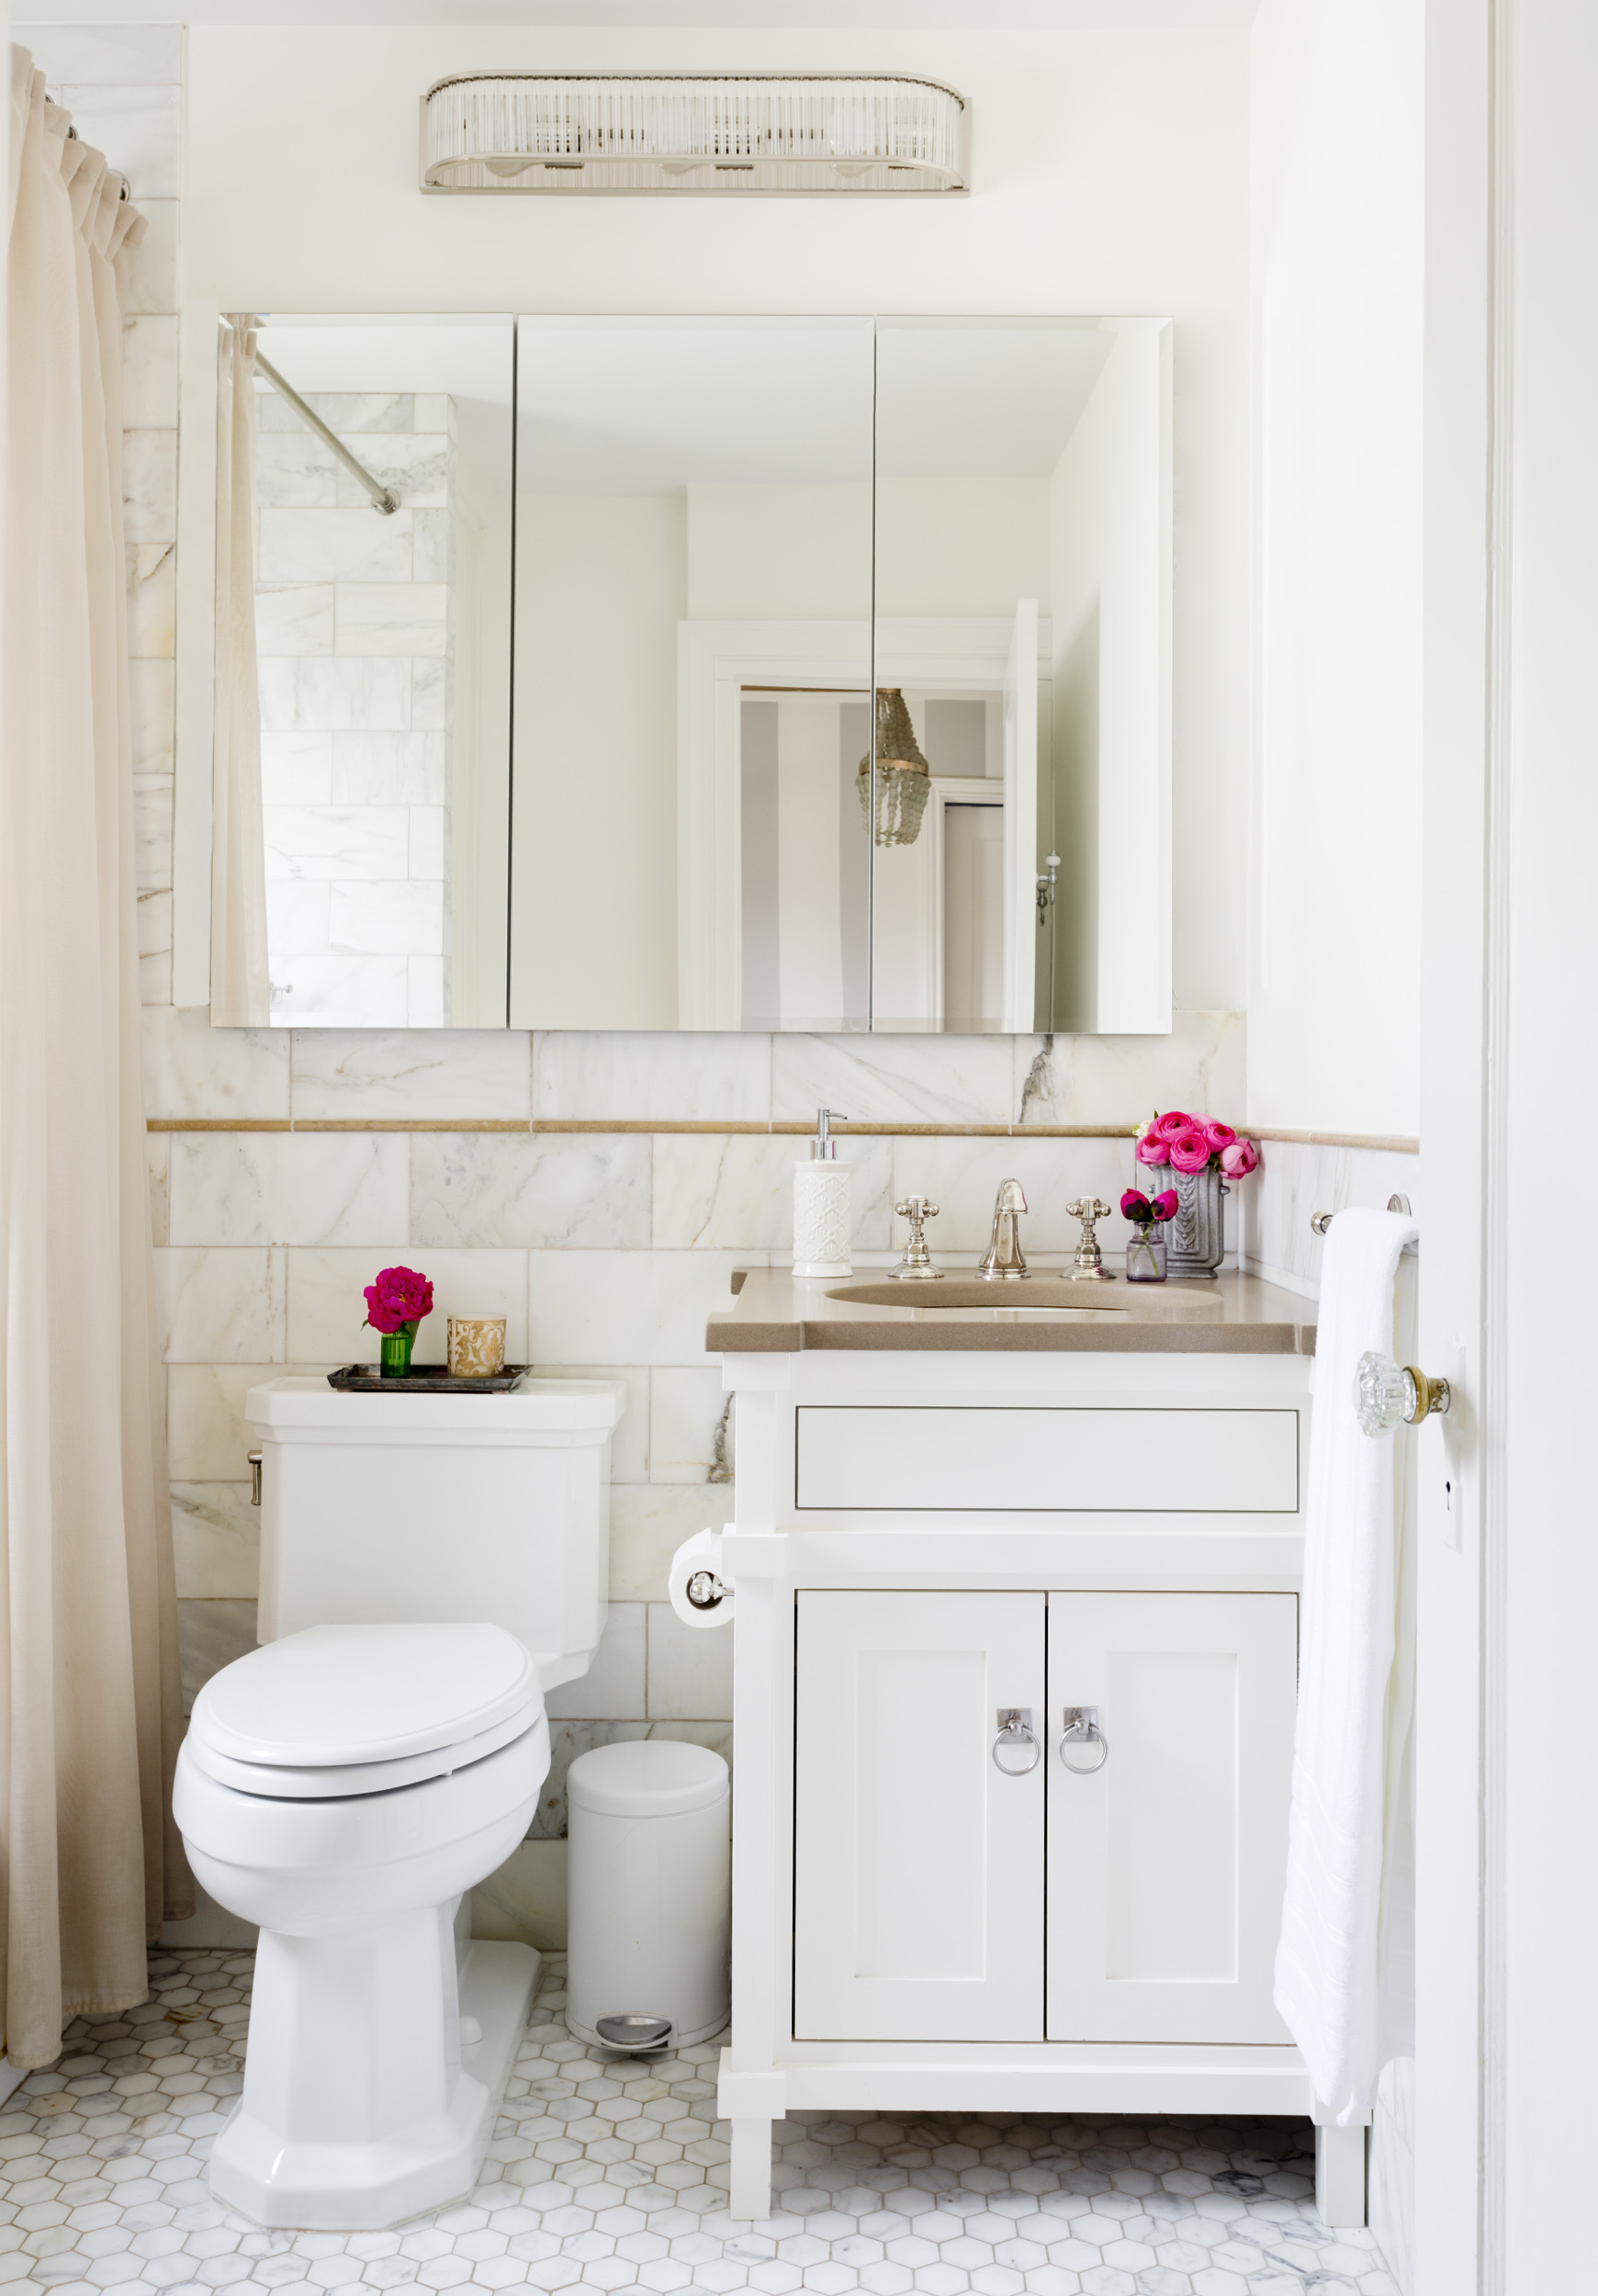 Bathroom designer Bathroom Renovation Bathroom Remodeler Connecticut.jpg